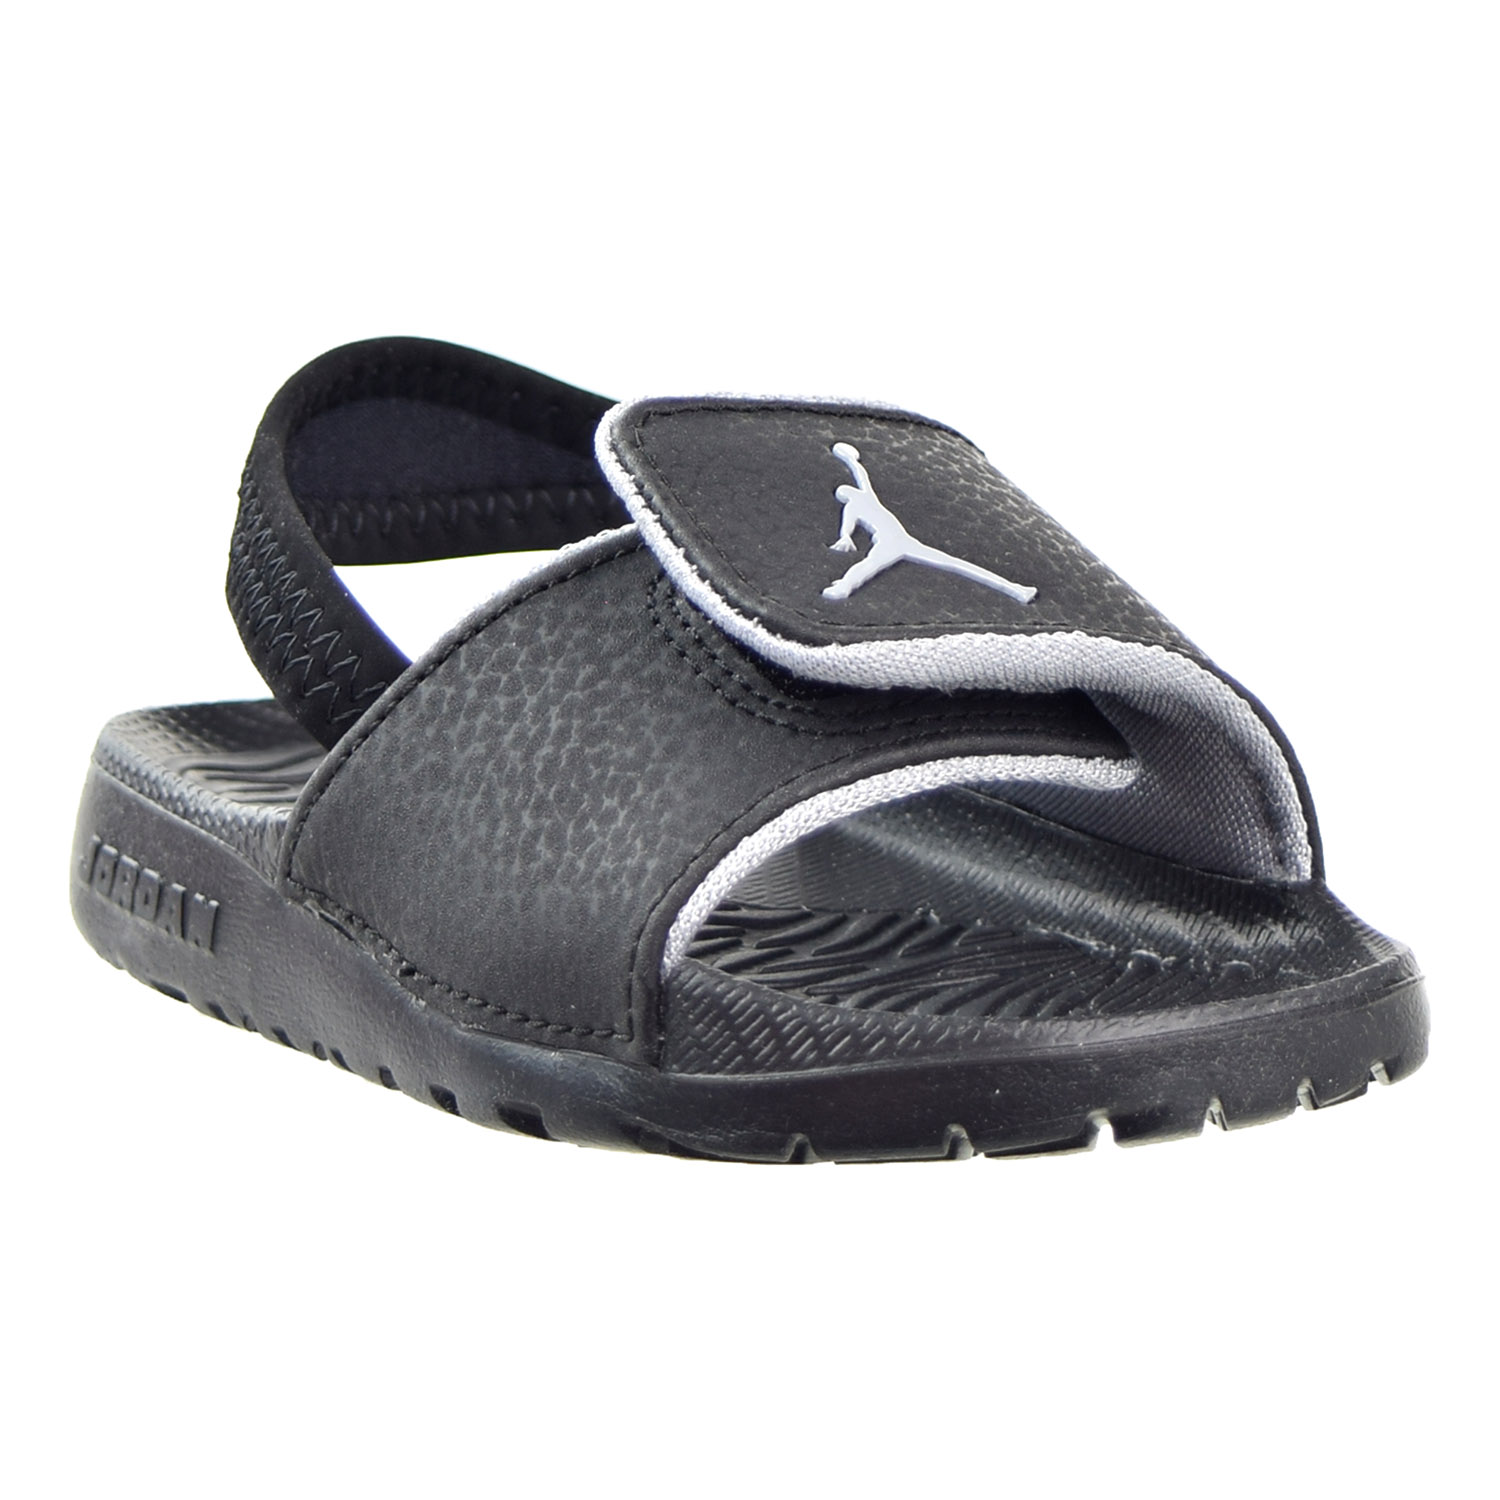 934531ea181 jordan hydro toddler sandals Sale